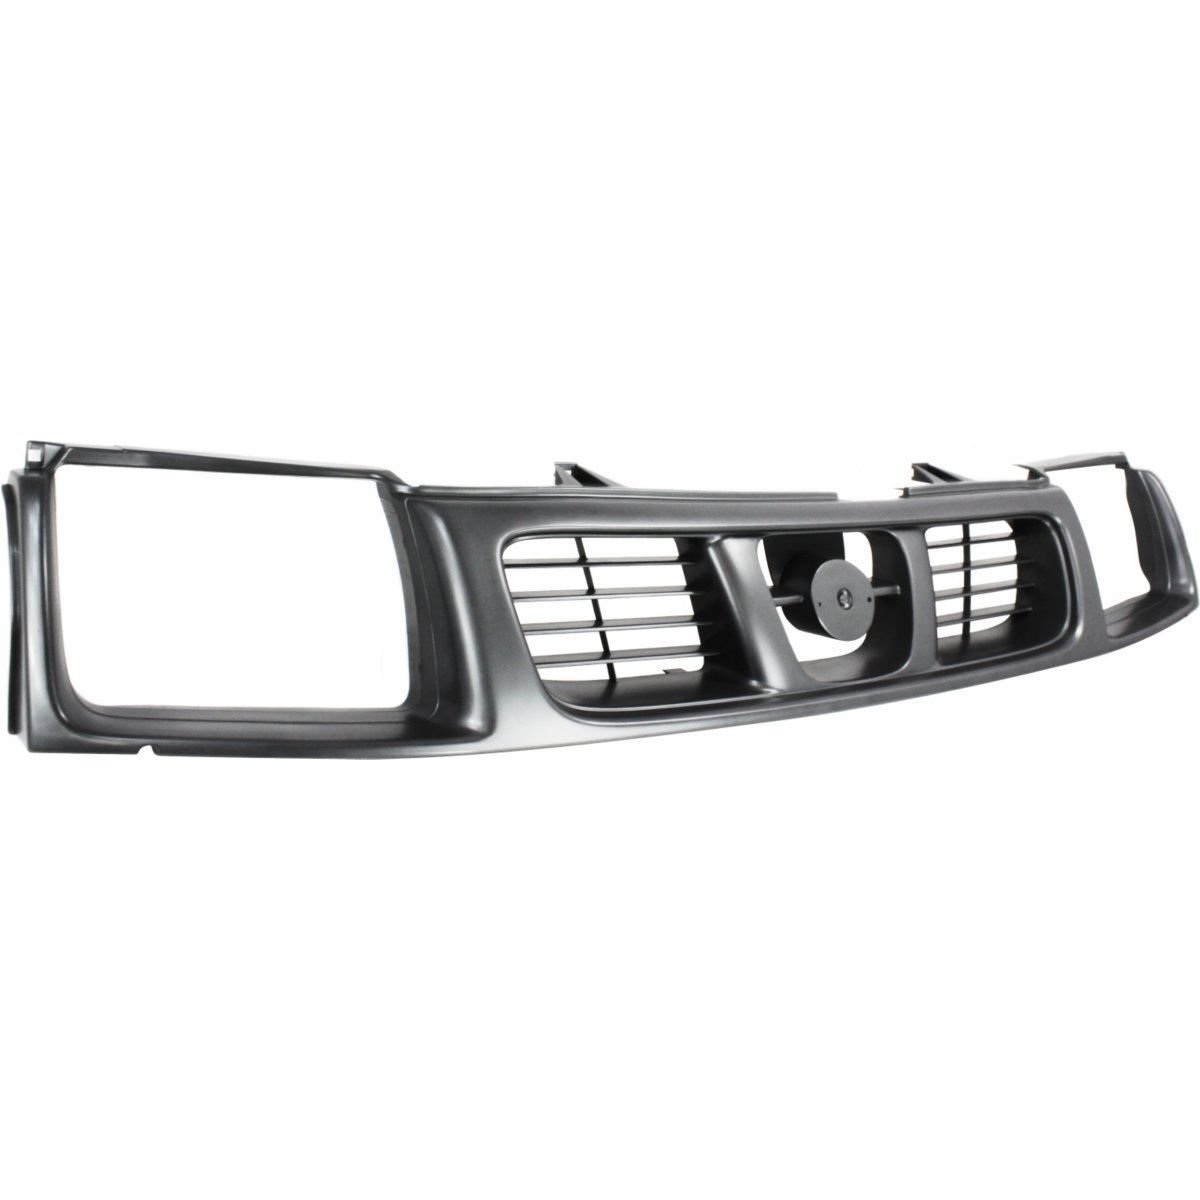 New Front Grille Side For 1998-2000 Nissan Frontier Black NI1200181 623103S500